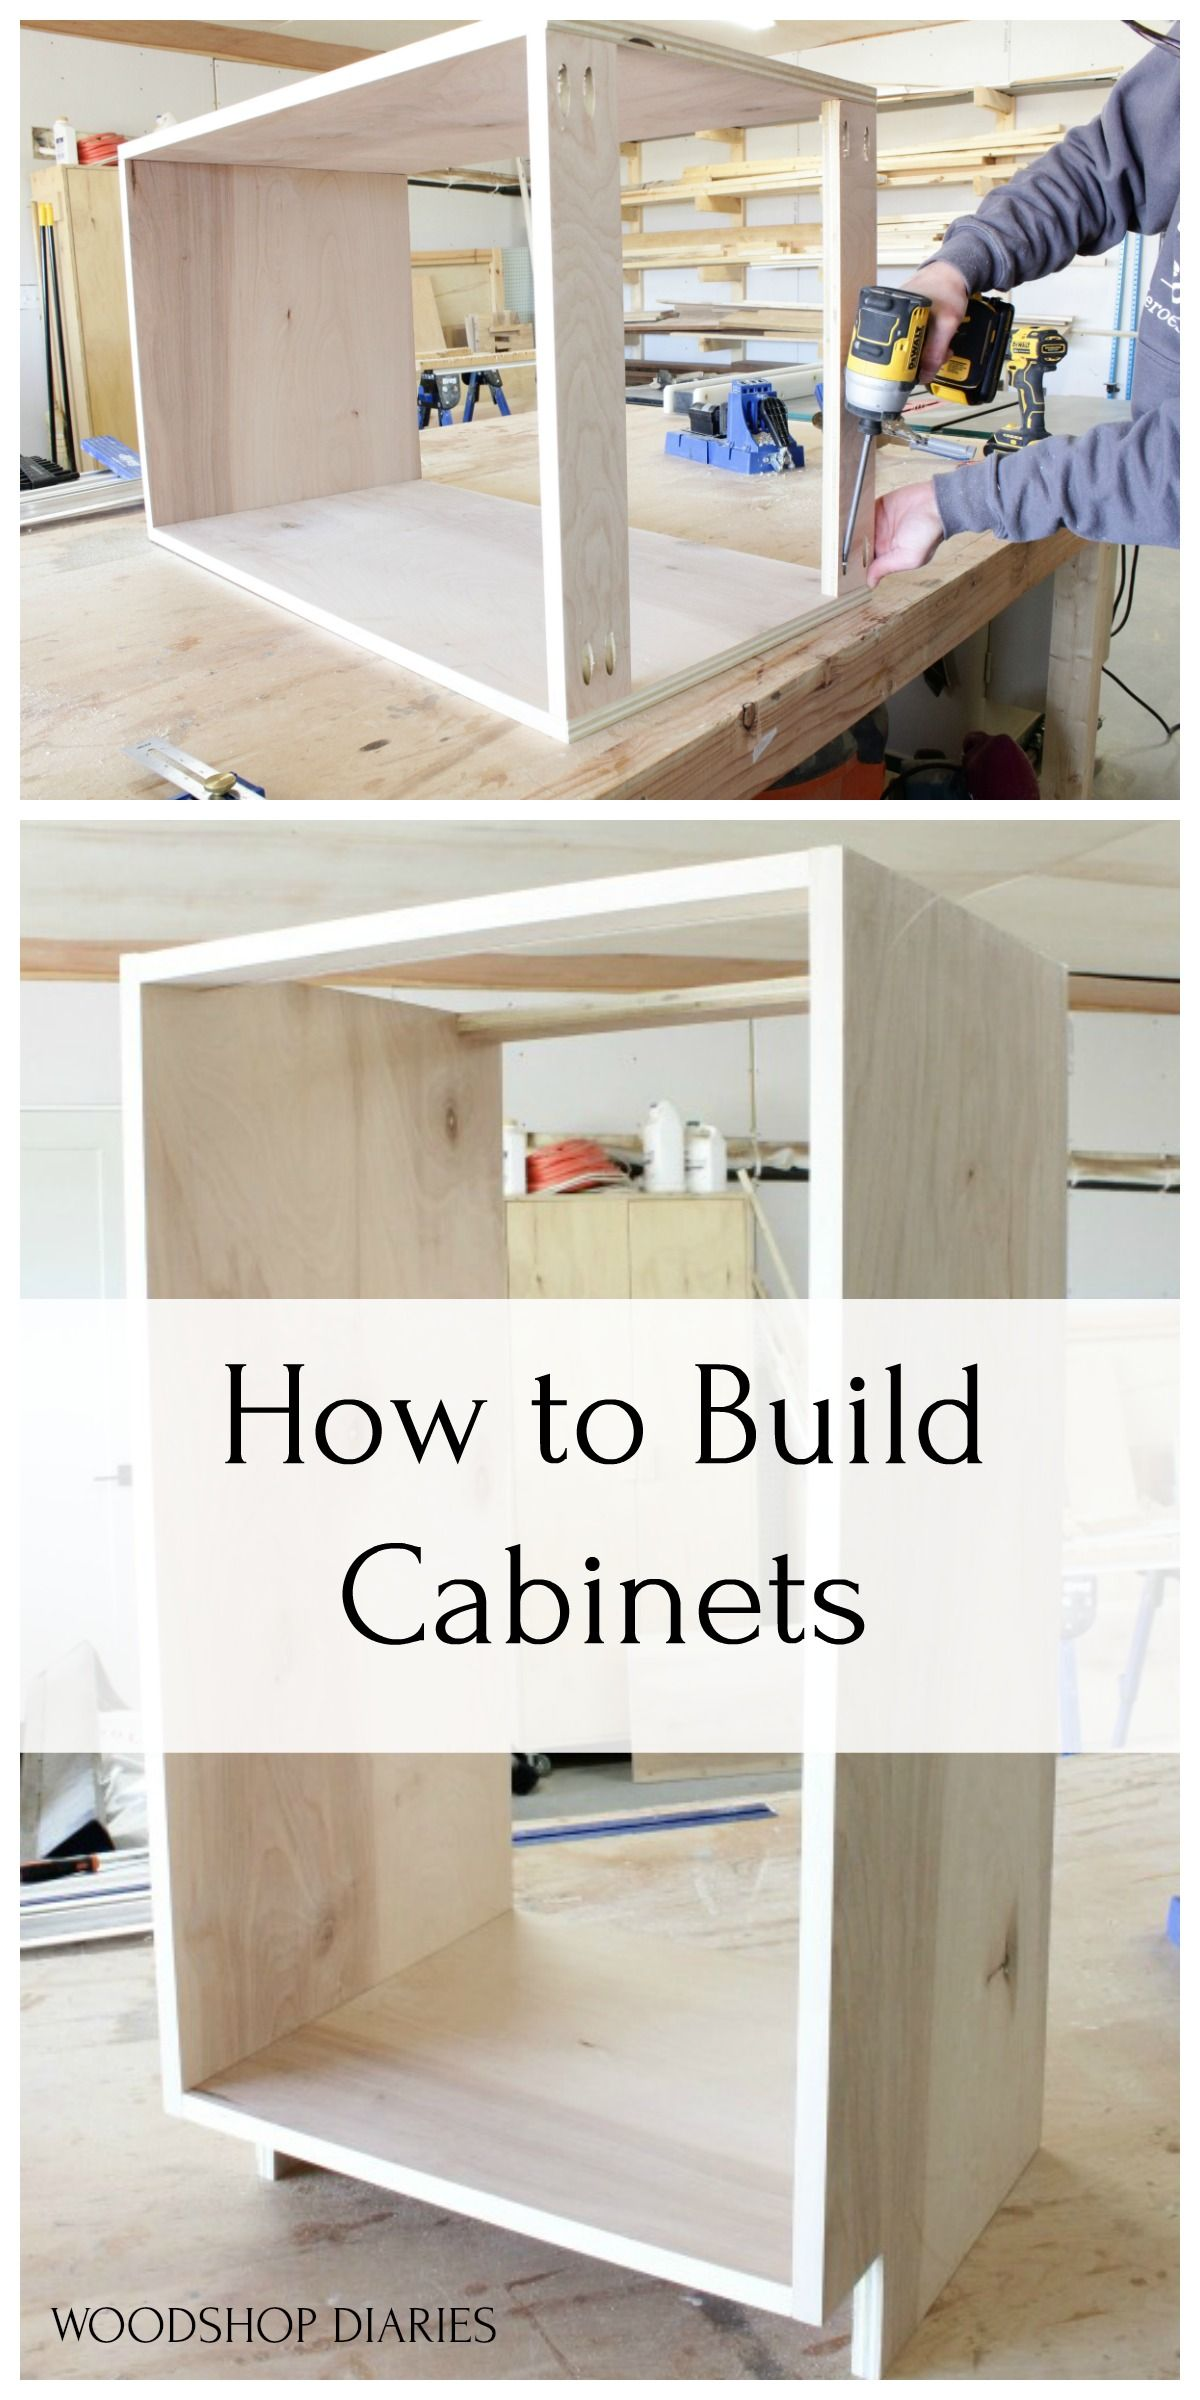 Diy Kitchen Cabinets Made From Only Plywood In 2020 Diy Kitchen Cabinets Wood Shop Projects Diy Kitchen Renovation